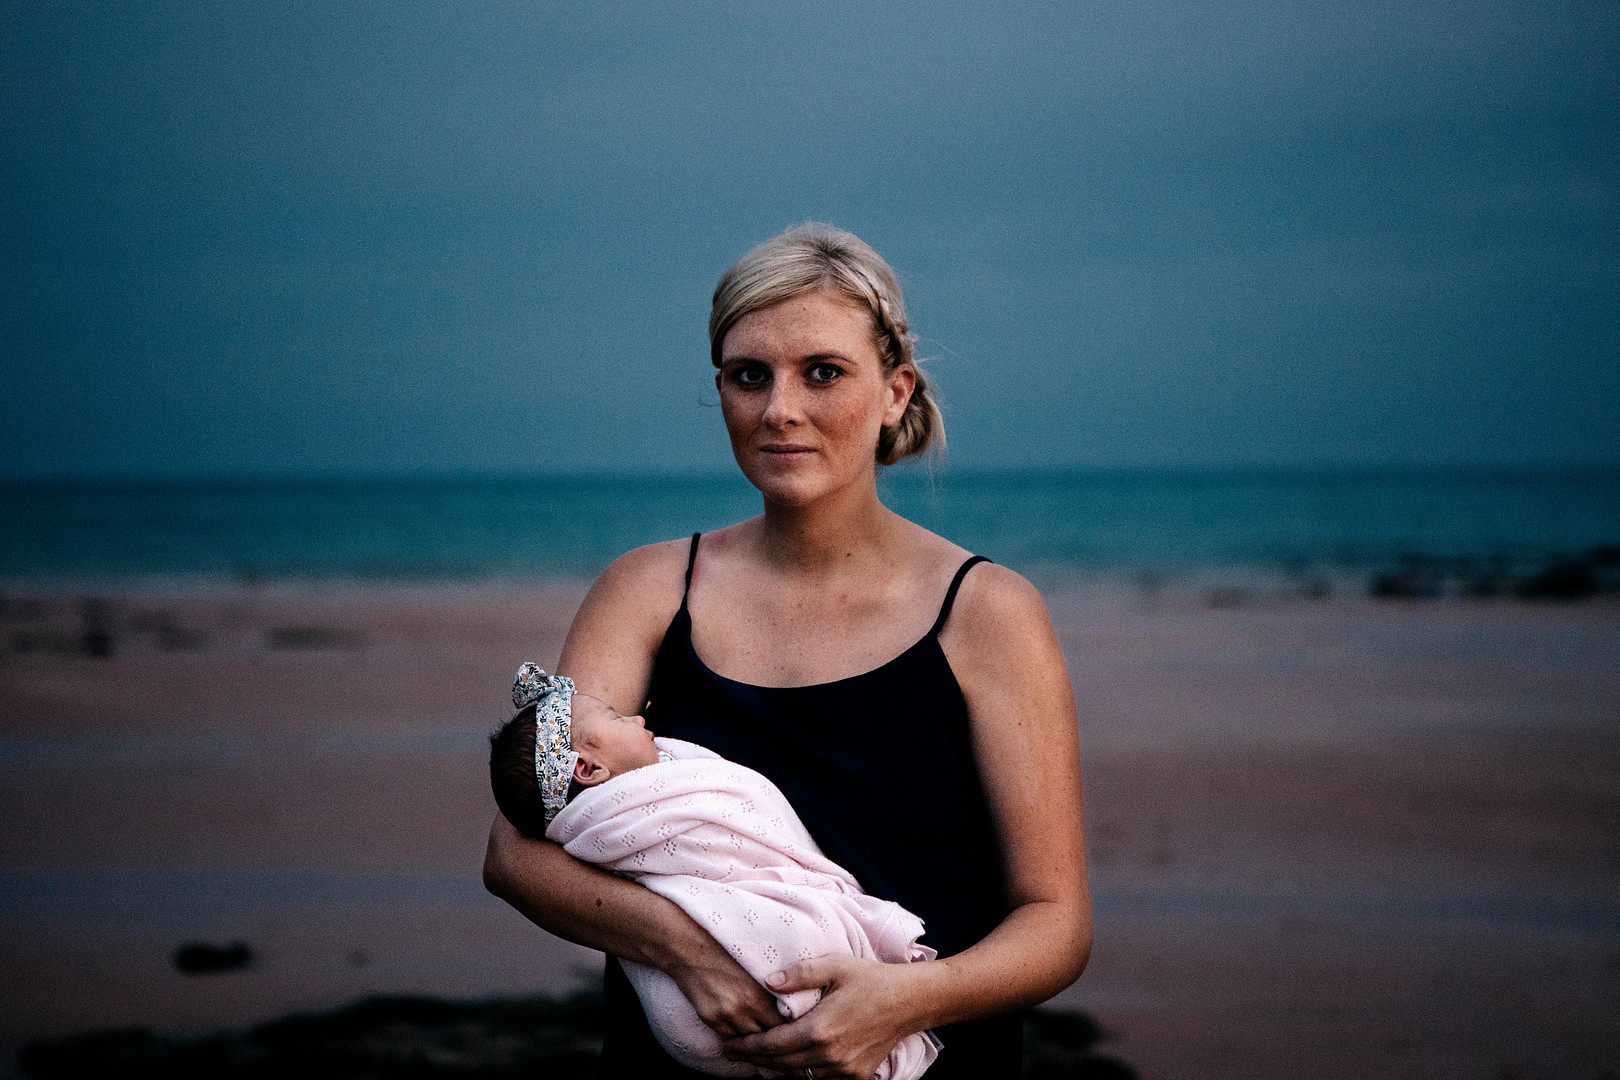 A mum holds her new born baby during sunset on a beach